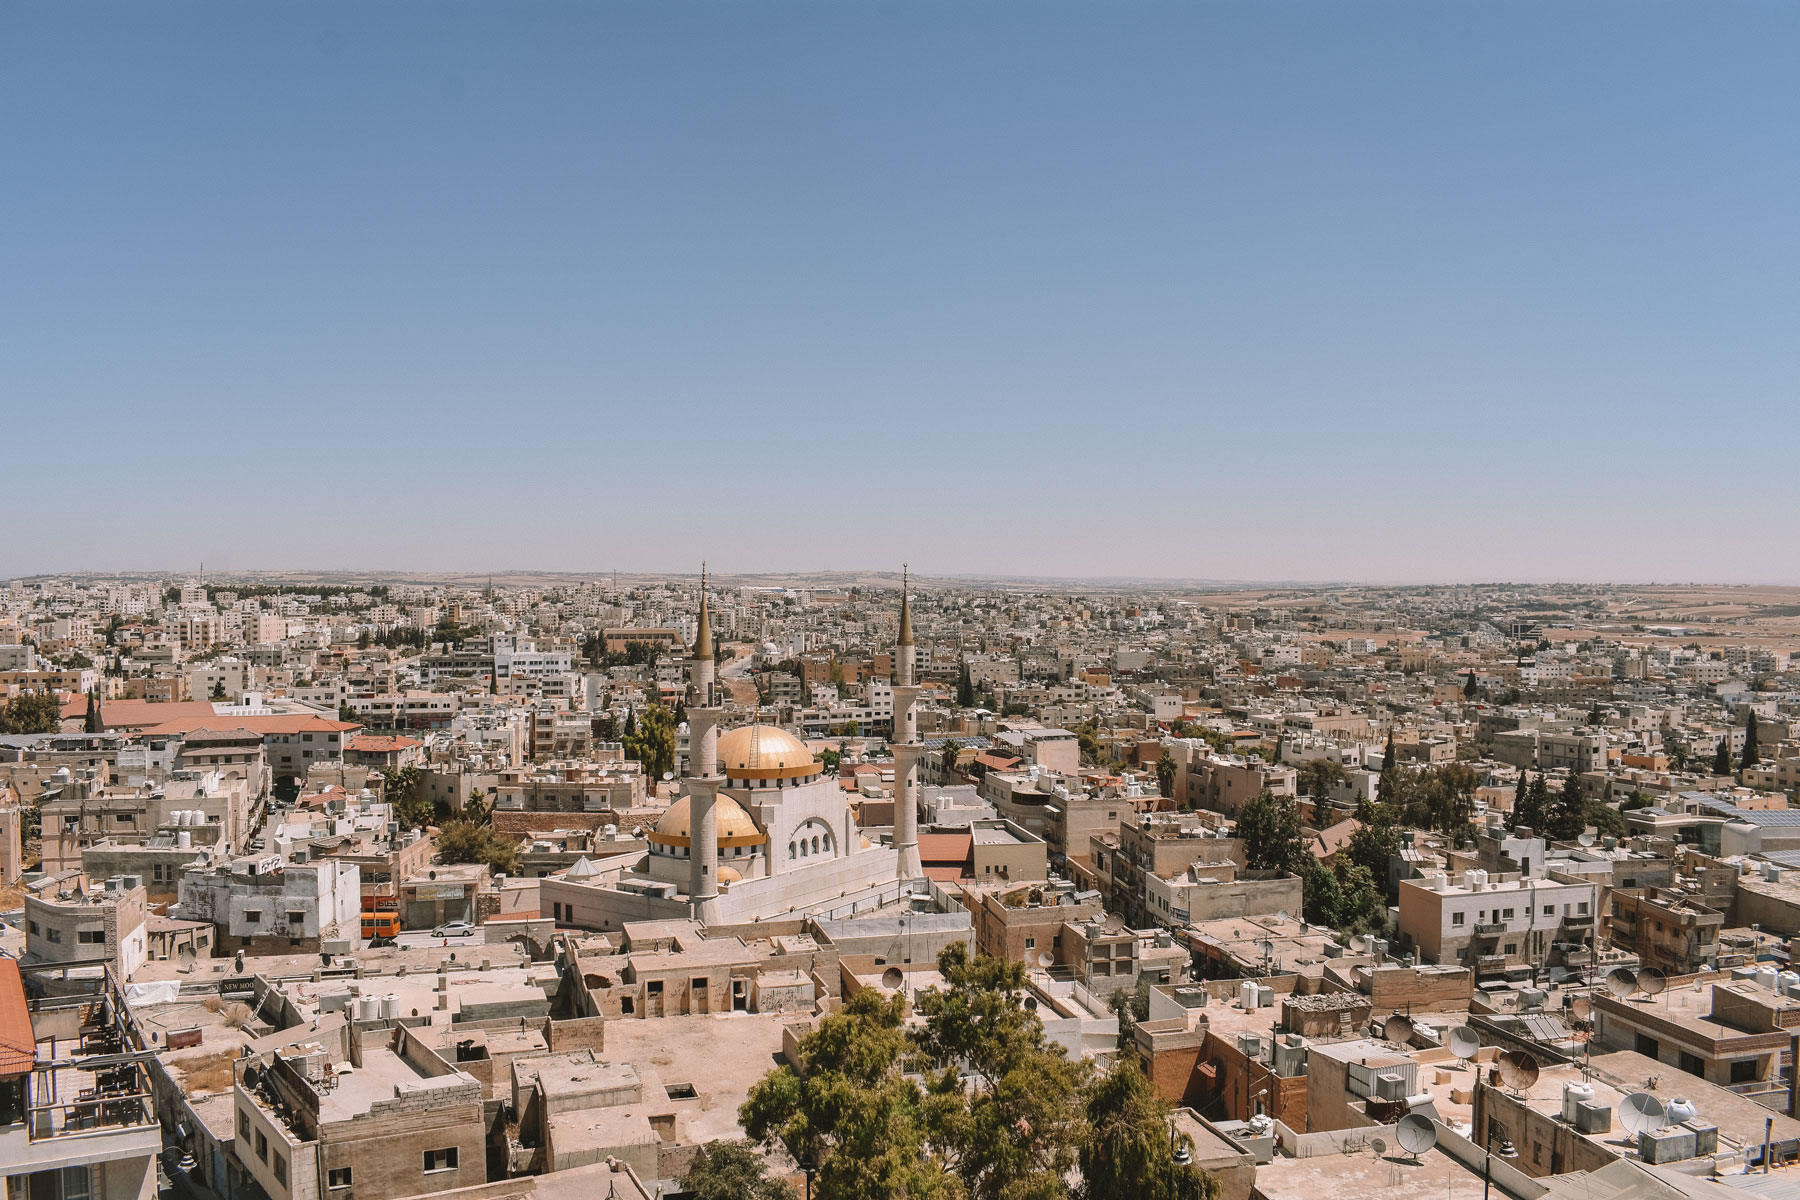 Madaba City in Jordan